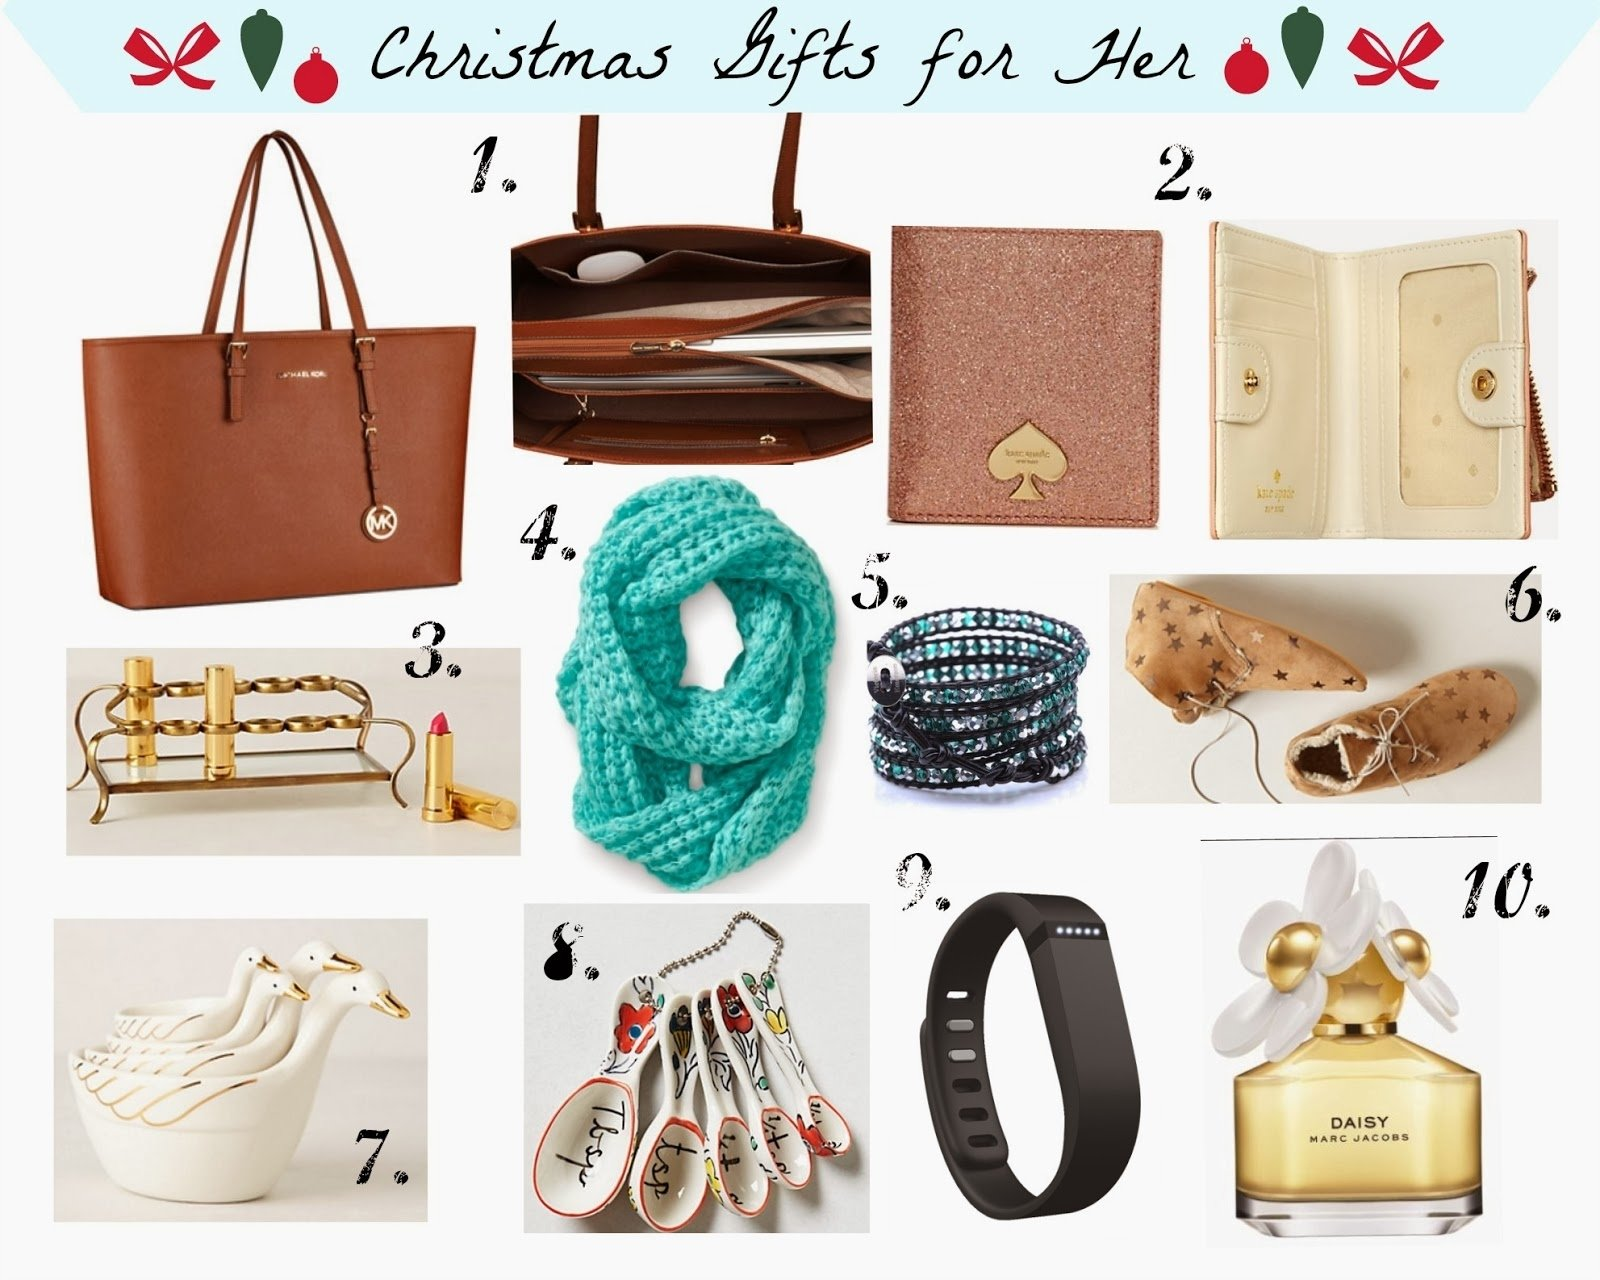 10 elegant christmas gift ideas for my wife best christmas gifts for a wife my web